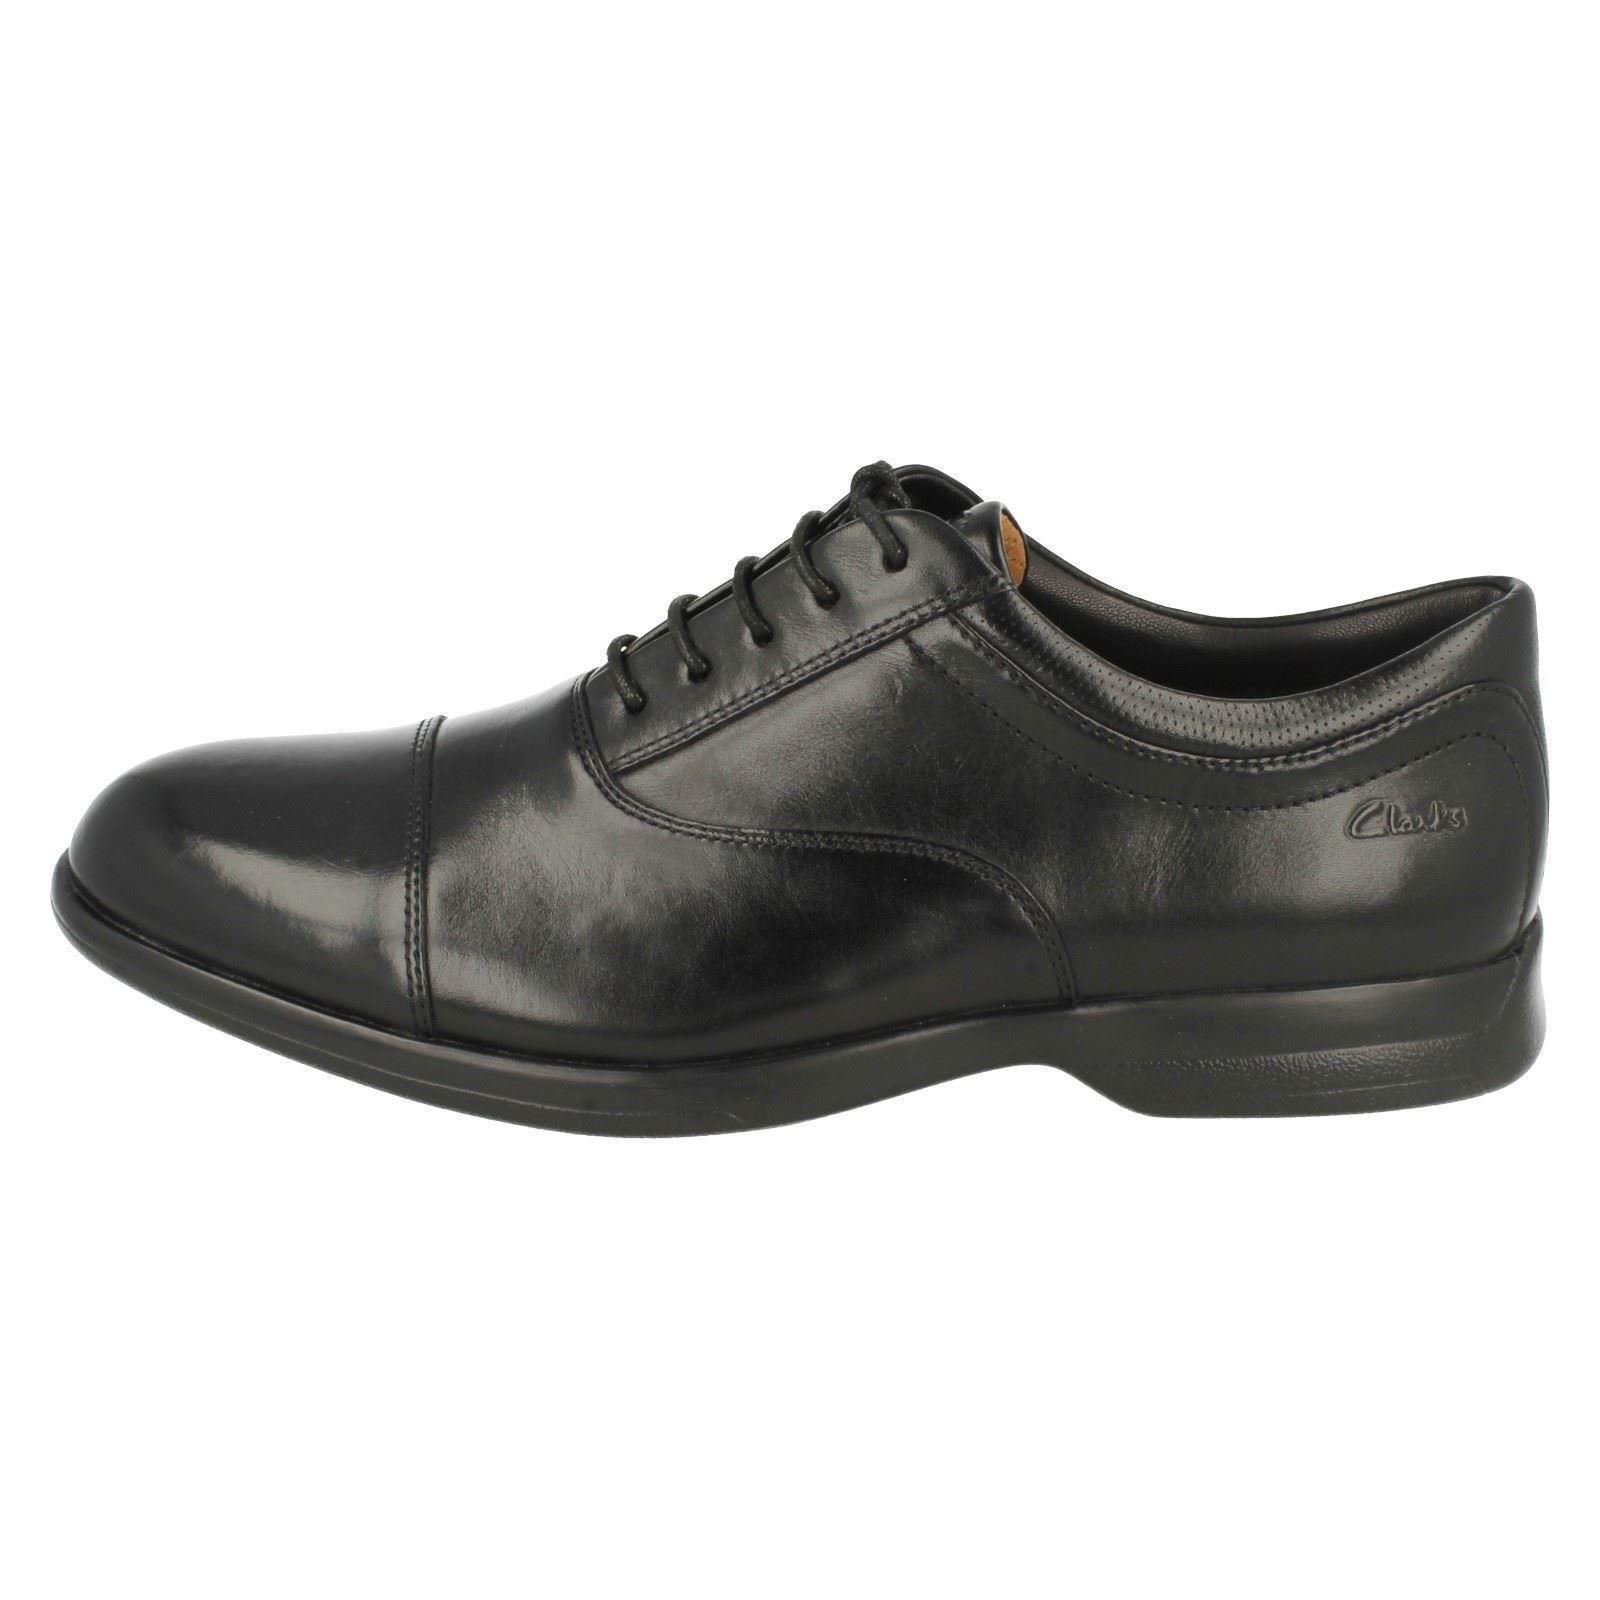 Mens nero generale Clarks 5 Cap Up Lace Smart Shoes rqCx6Trn